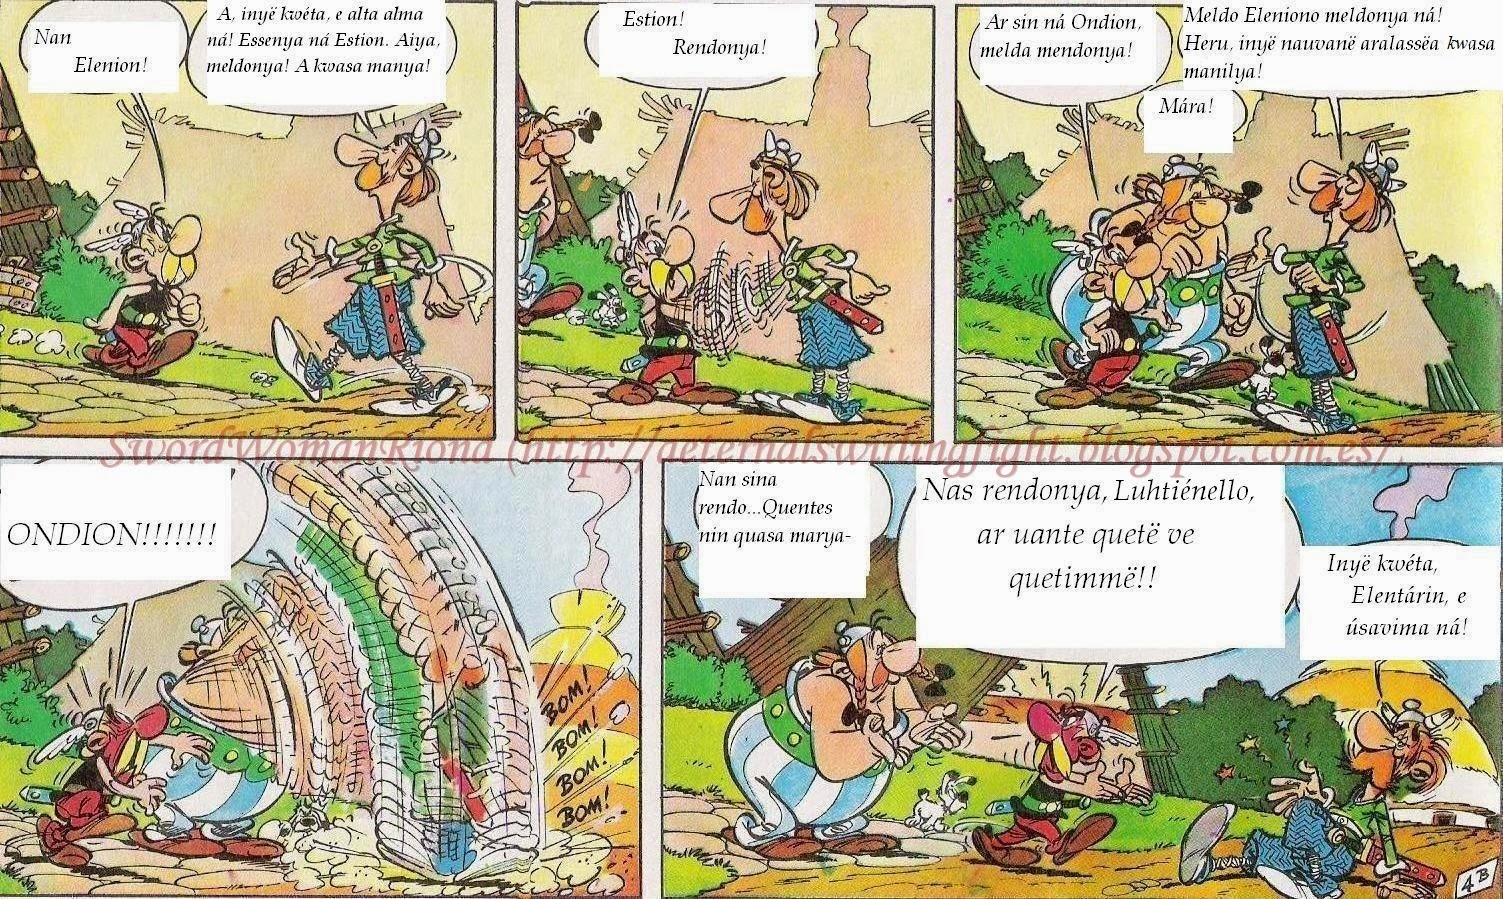 The Aeternal Swirling Fight : Translating Astérix into Quenya